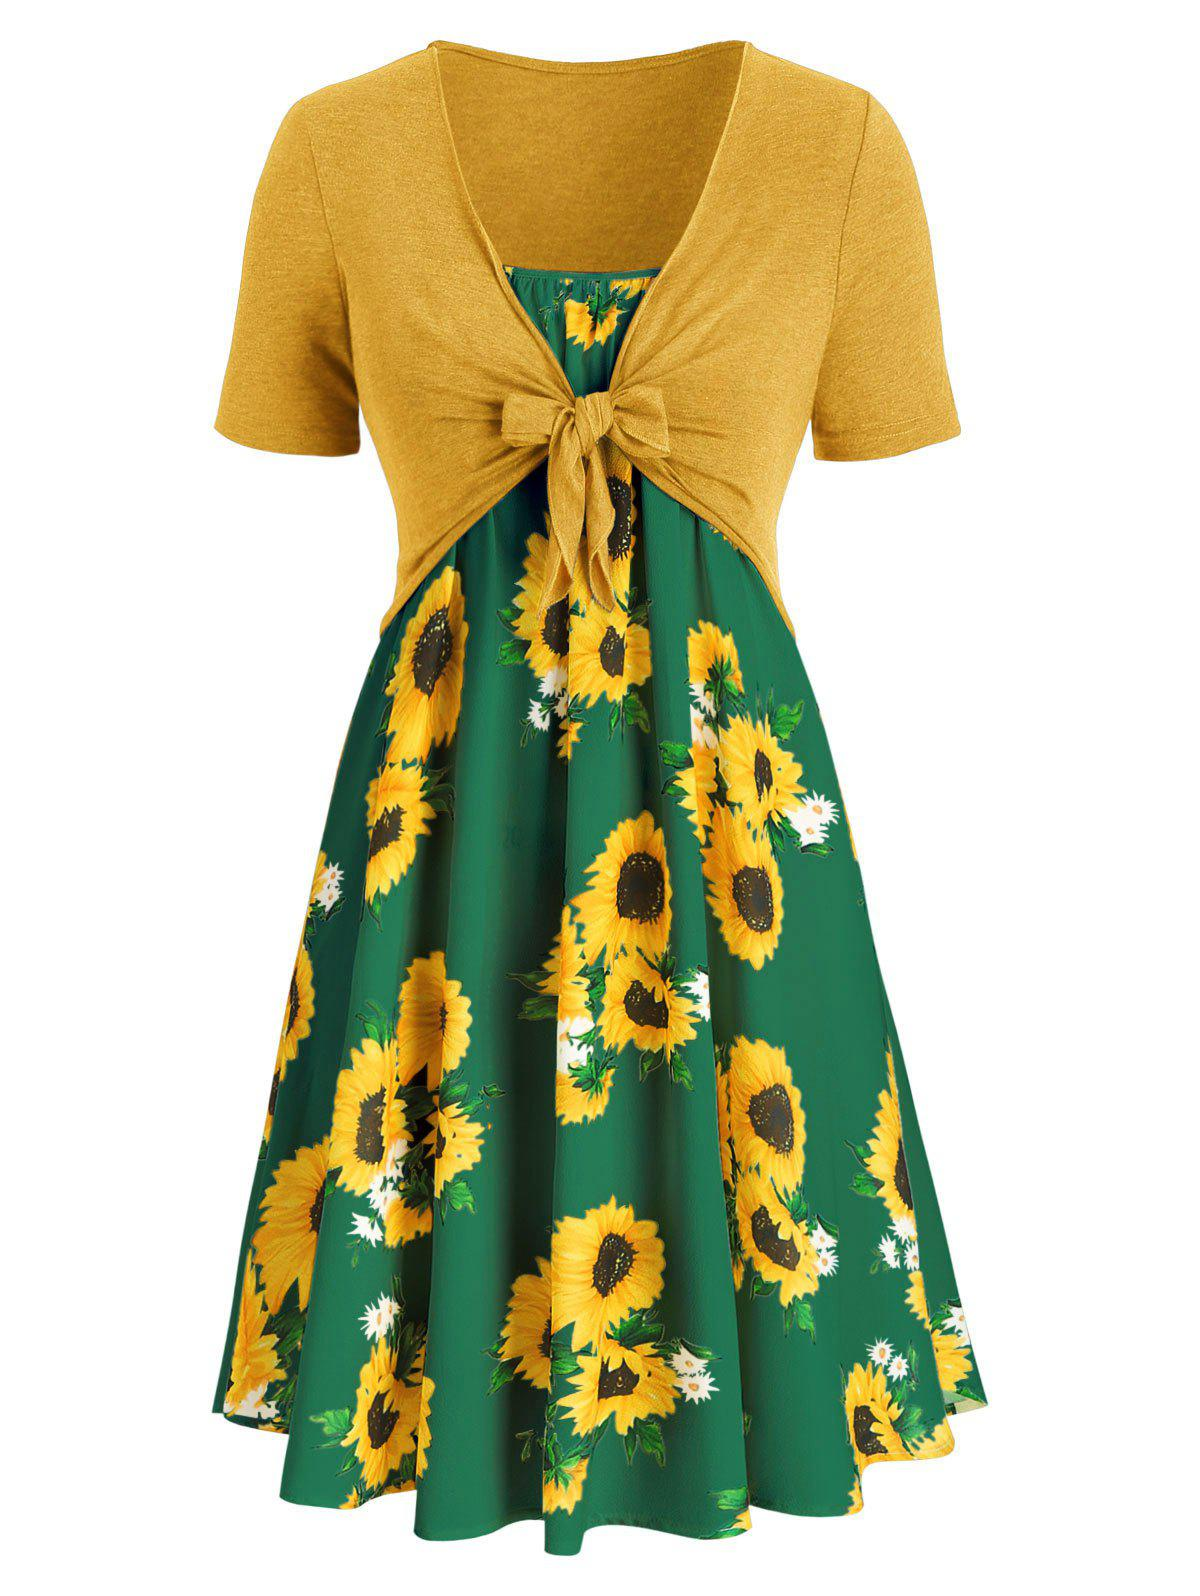 9c3e5803353 50% OFF   2019 Plus Size Sunflower Print Knotted Two Piece Dress ...